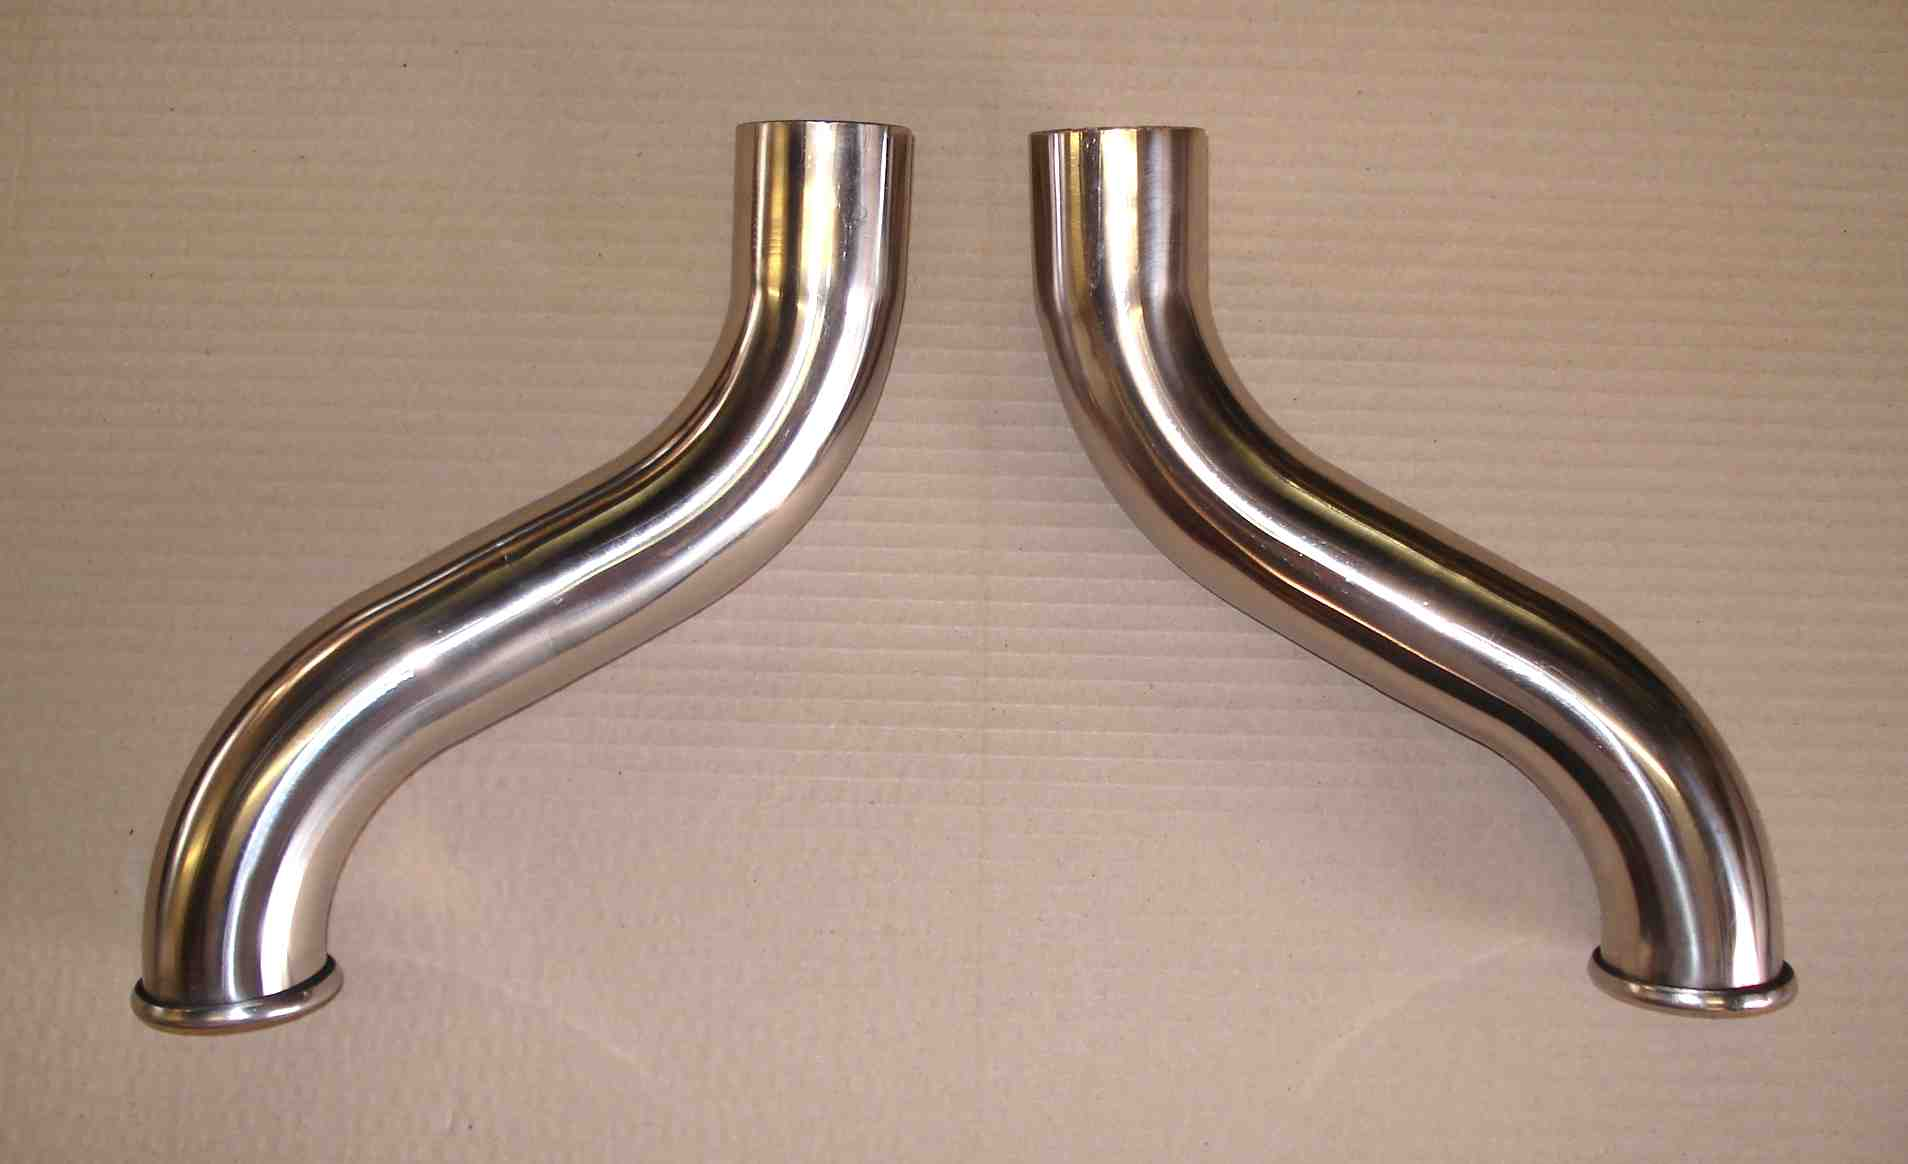 Standard or large tails for XJ6/XJ12